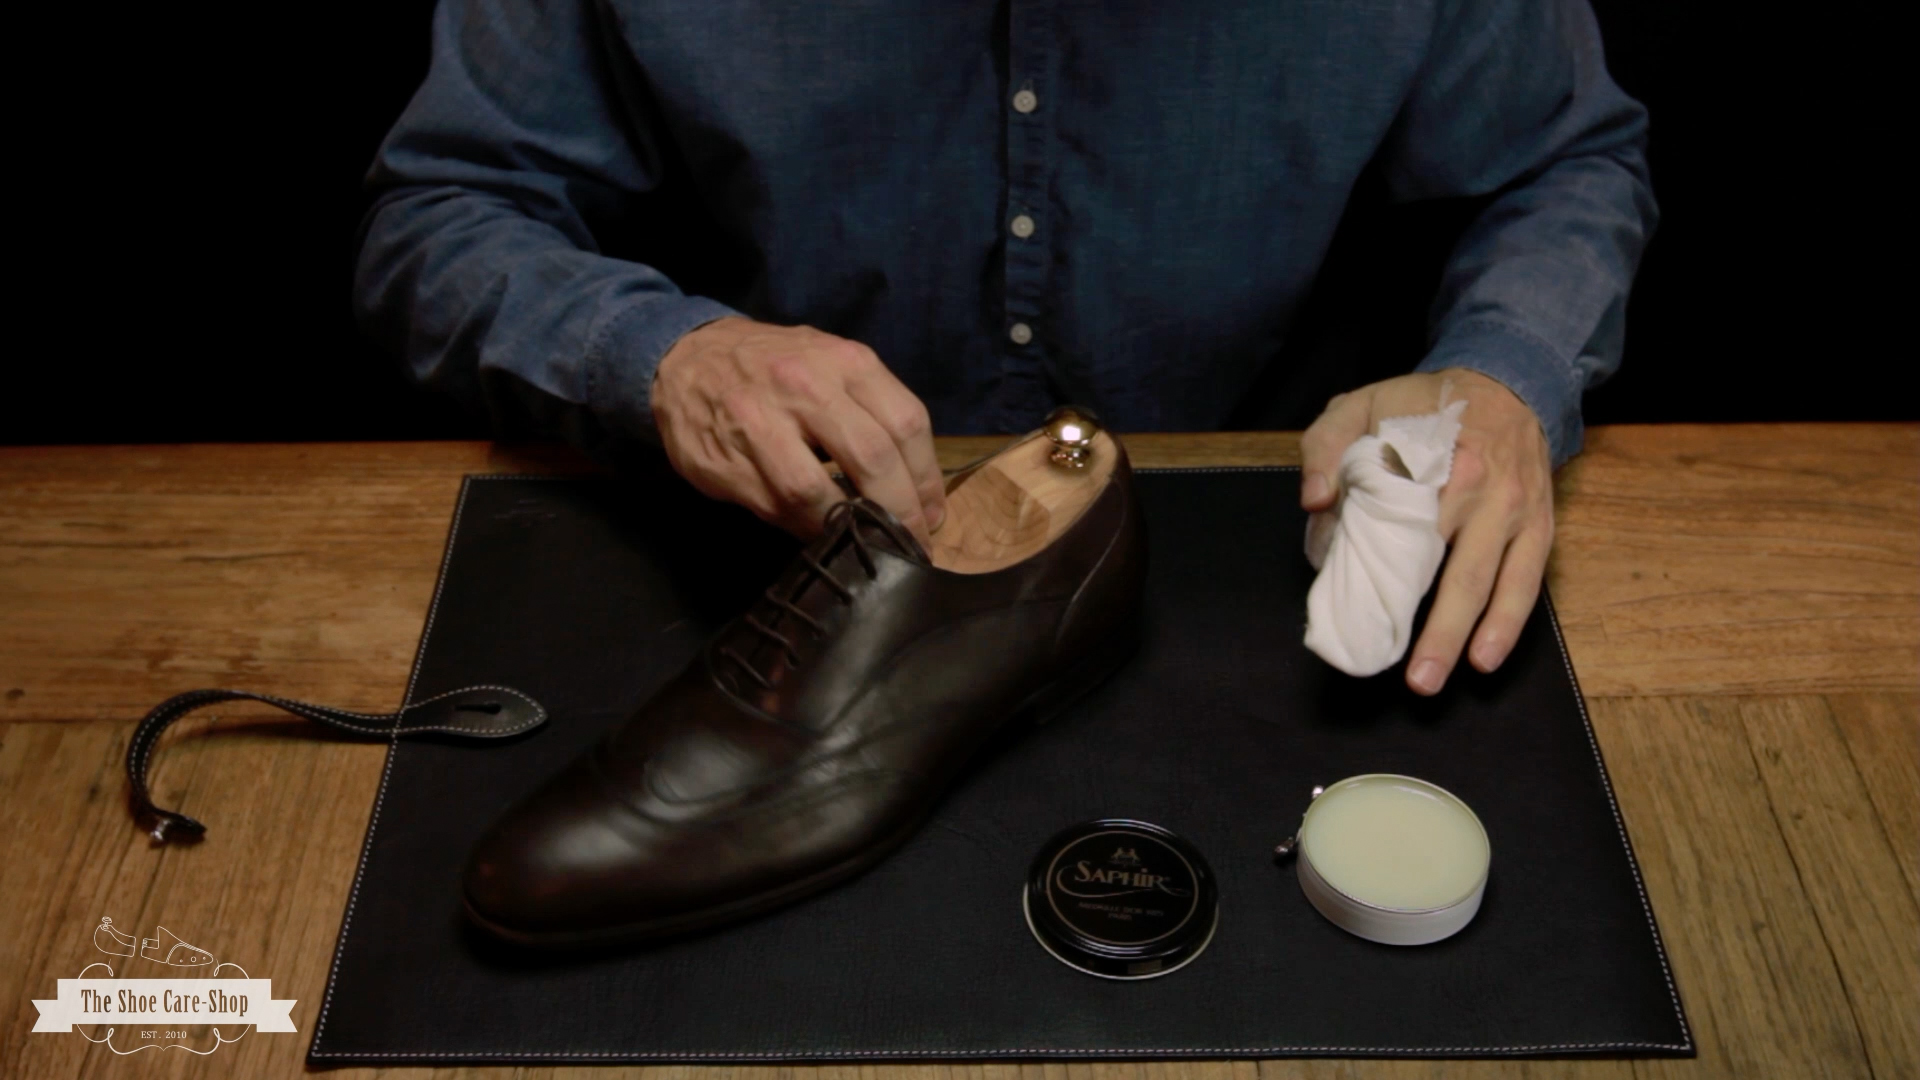 Use a soft cloth or a brush to remove any grime that may be stuck to the shoe's leather surfaces. Step 3: Apply soap. Mix a solution of warm water and dish soap, dip a soft cloth into it, wring it out and wipe the exterior surfaces of the shoe.